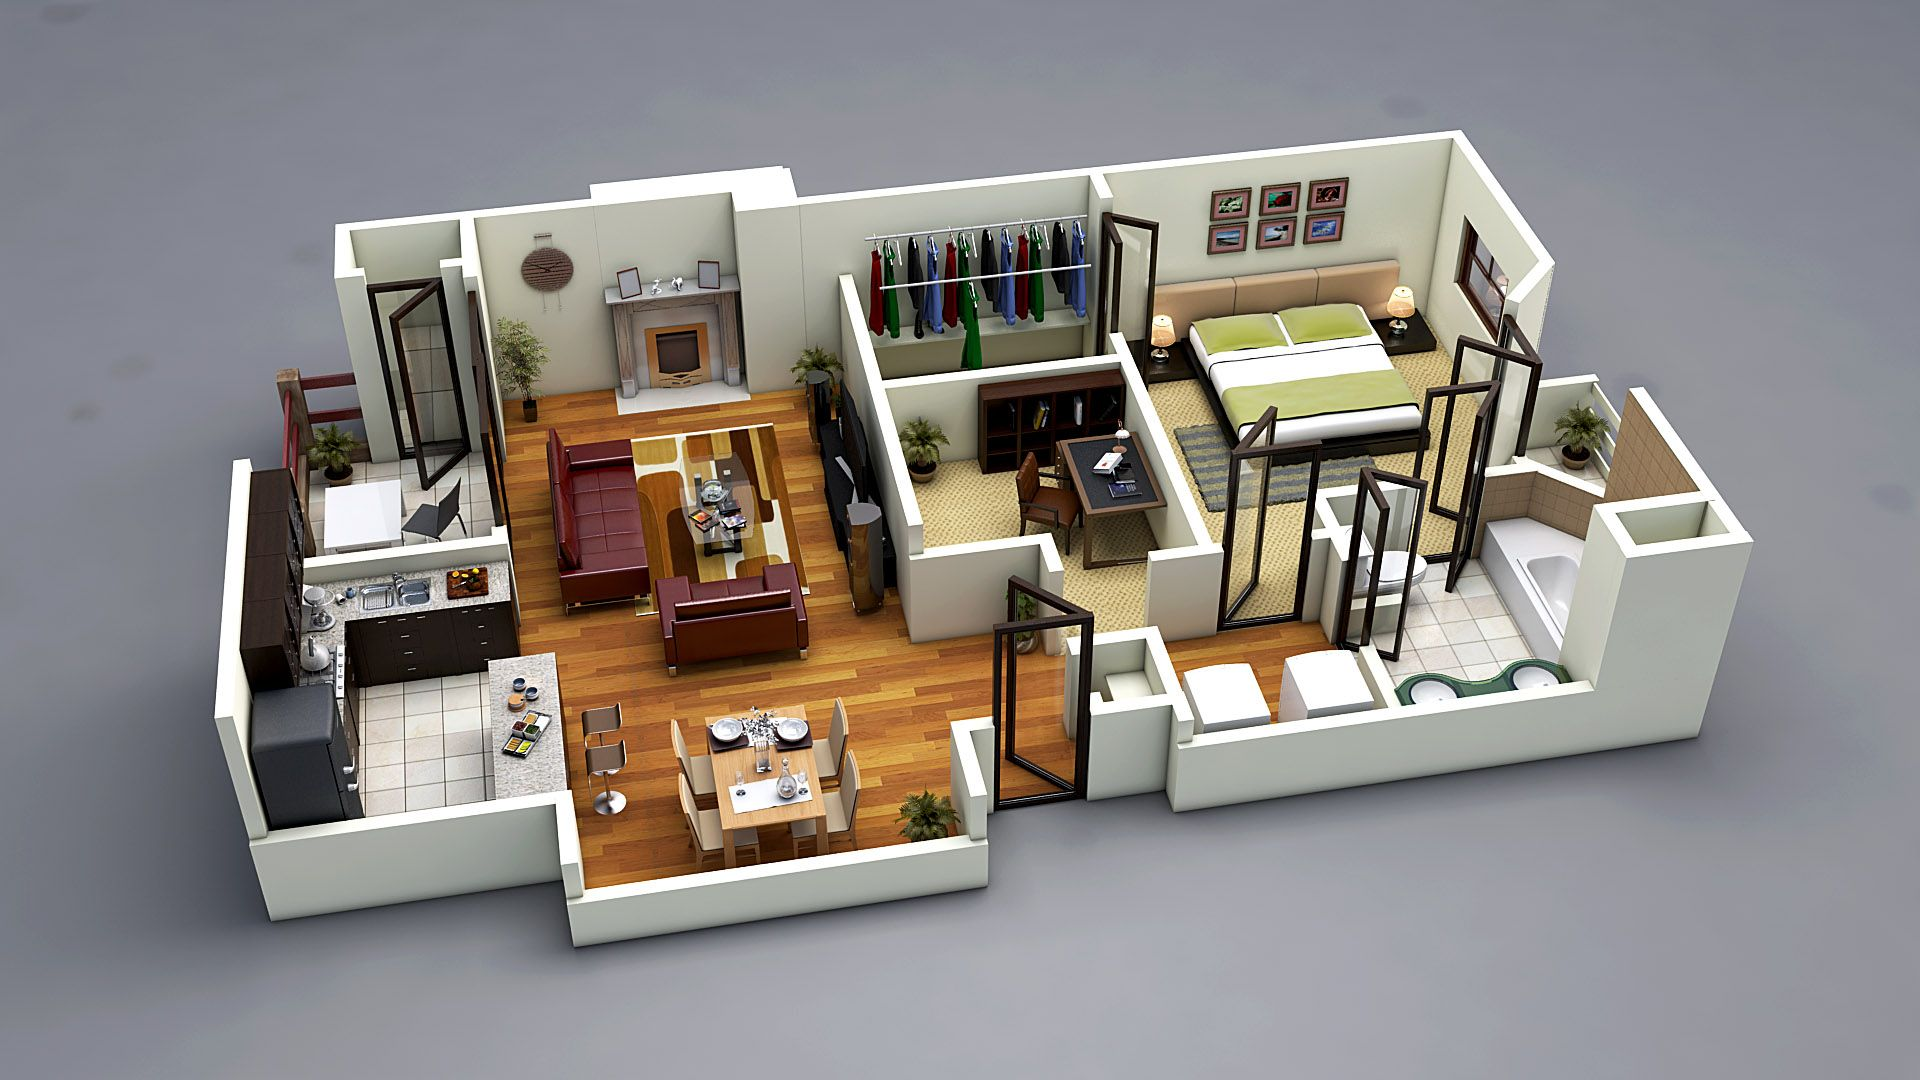 Photo realistic 3d floor plan 3ds max vray www for In plan 3d